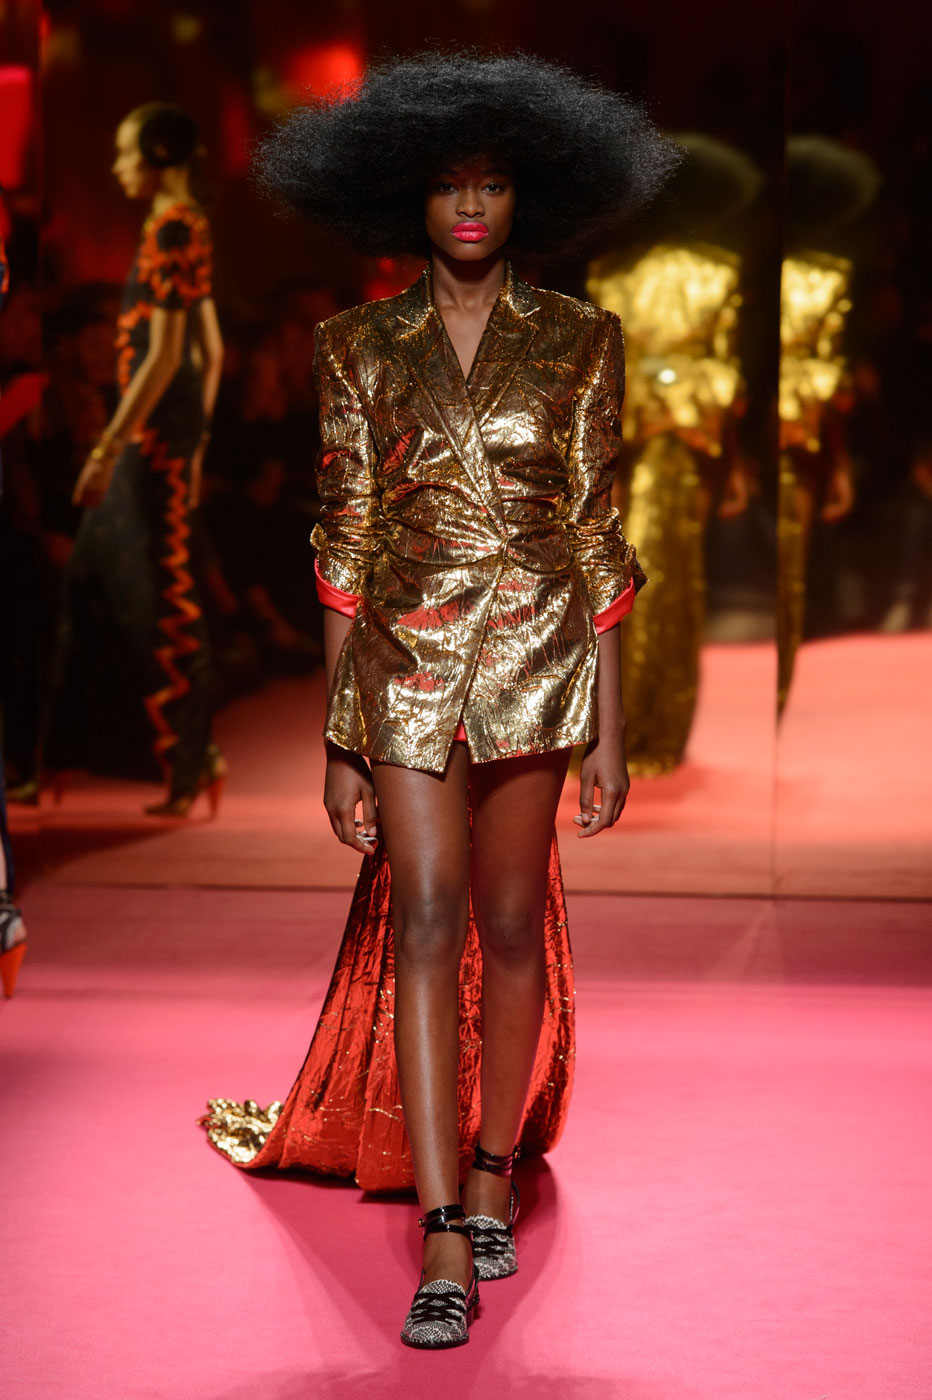 Schiaparelli-fashion-runway-show-haute-couture-paris-spring-summer-2015-the-impression-46